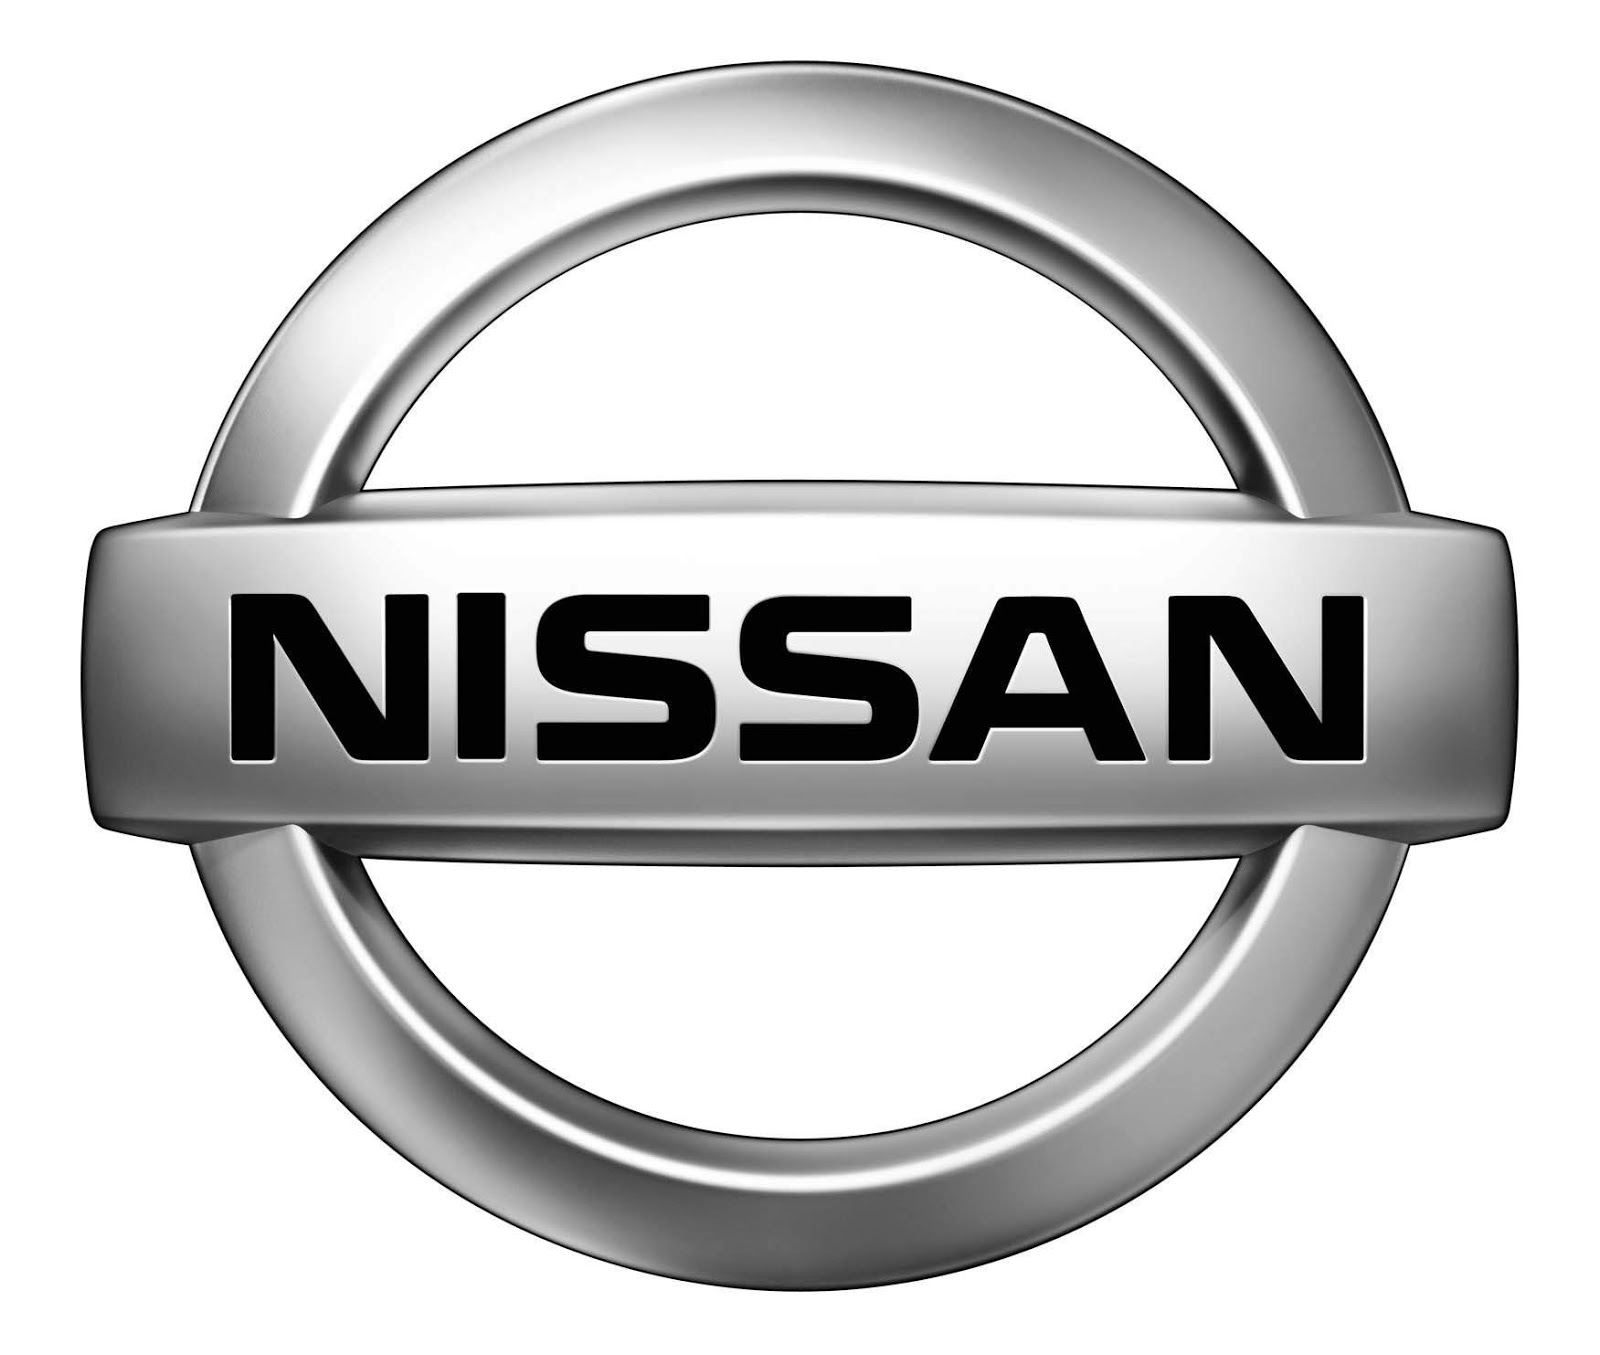 The car company Nissan reports  Z Logo Car Company